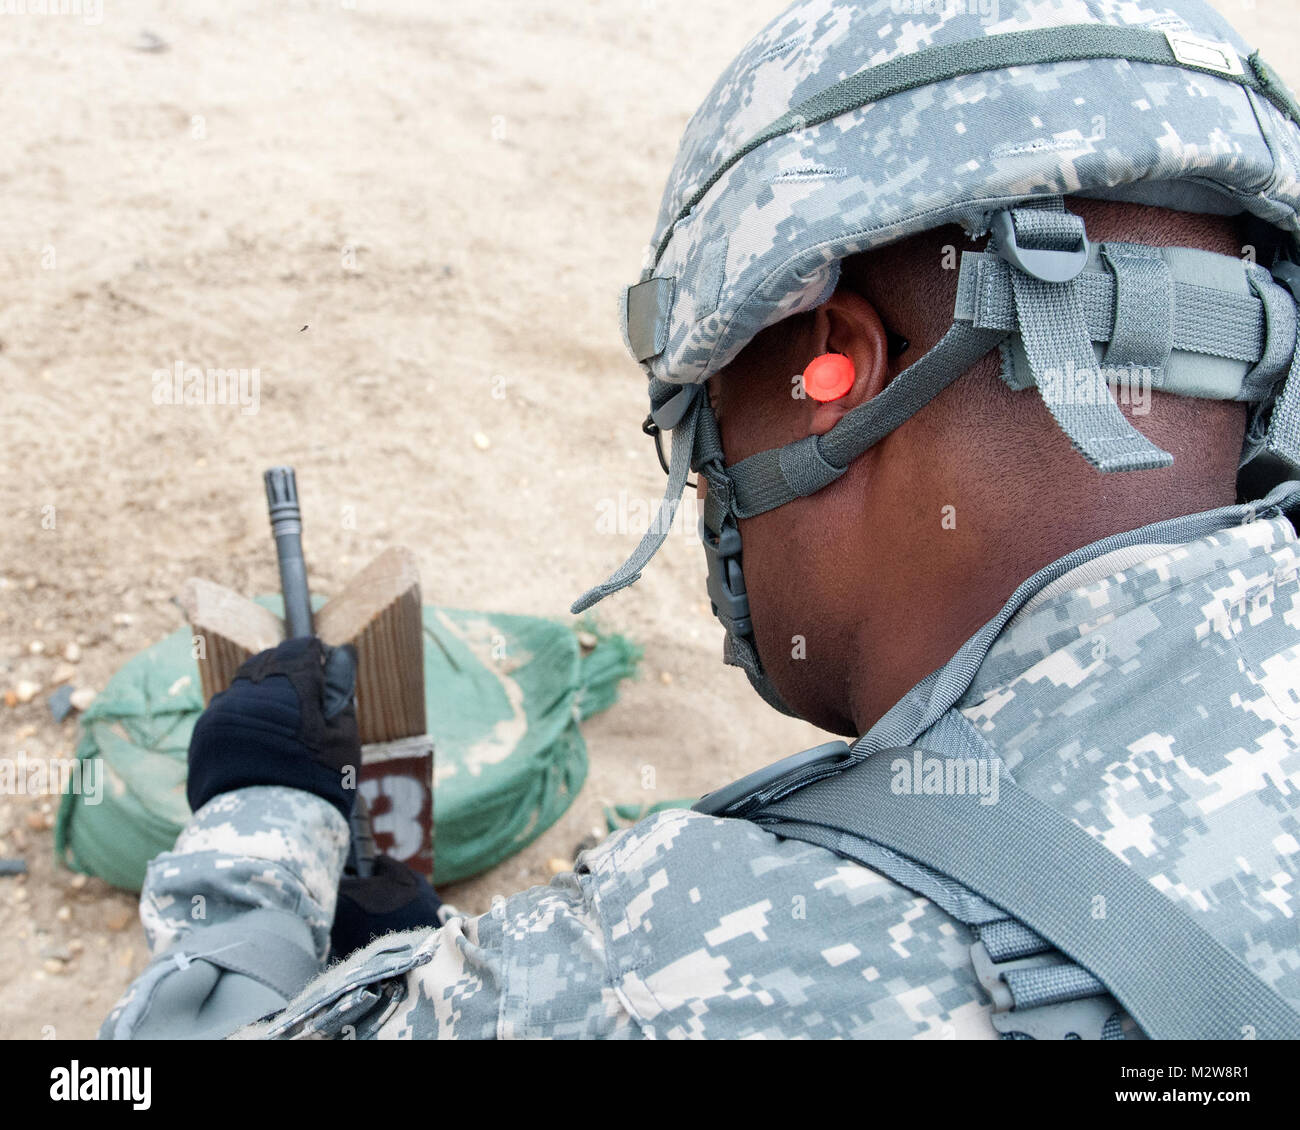 Sgt. Clarence Rankins, a member of the 316th ESC and native of York, Pa.,  adjusts the front sight of his M-16 Rifle - Stock Image